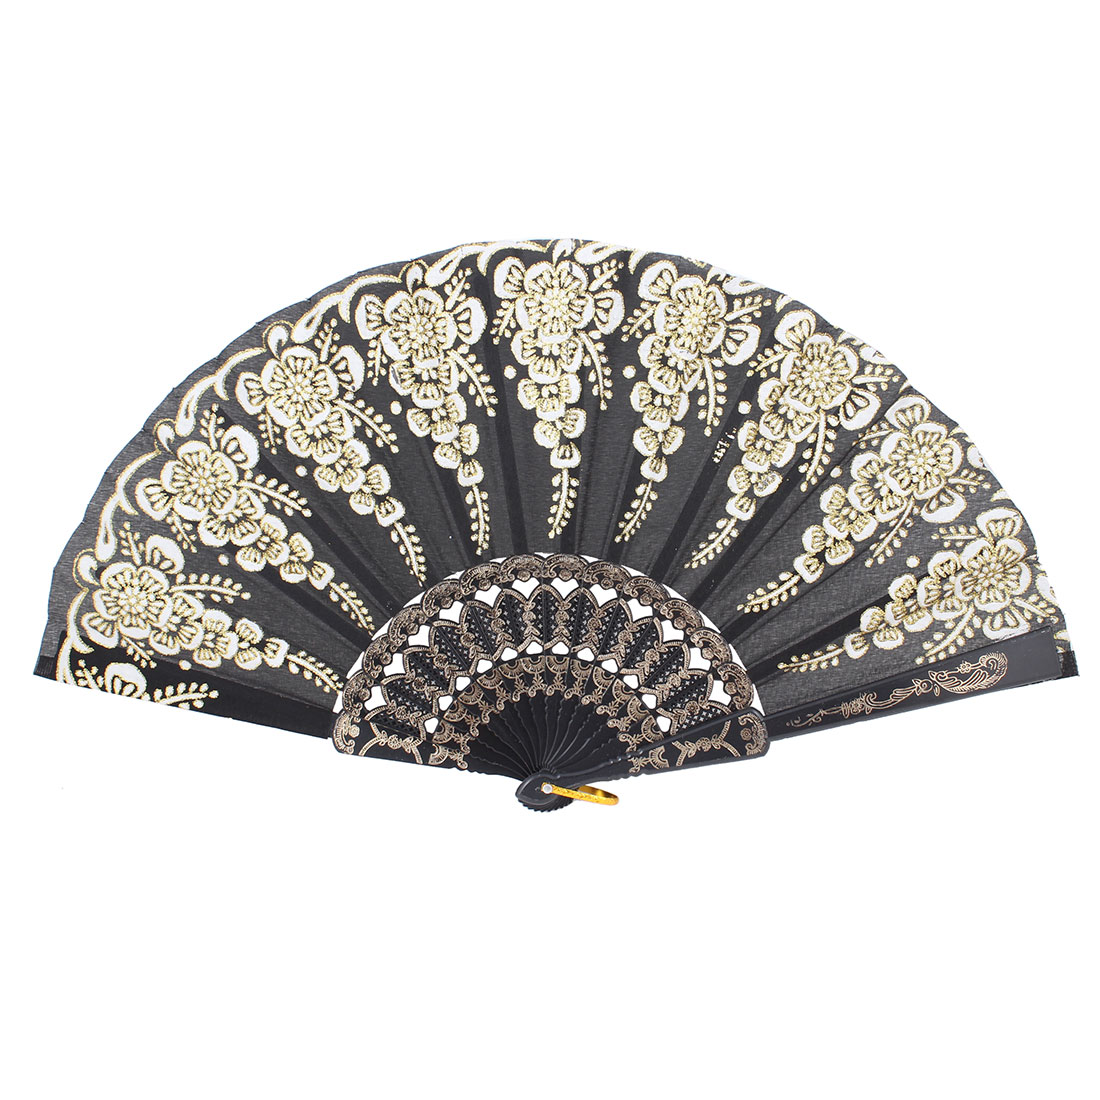 Black Embossed Frame Glittery Decor Folding Hand Fan w Metal Ring